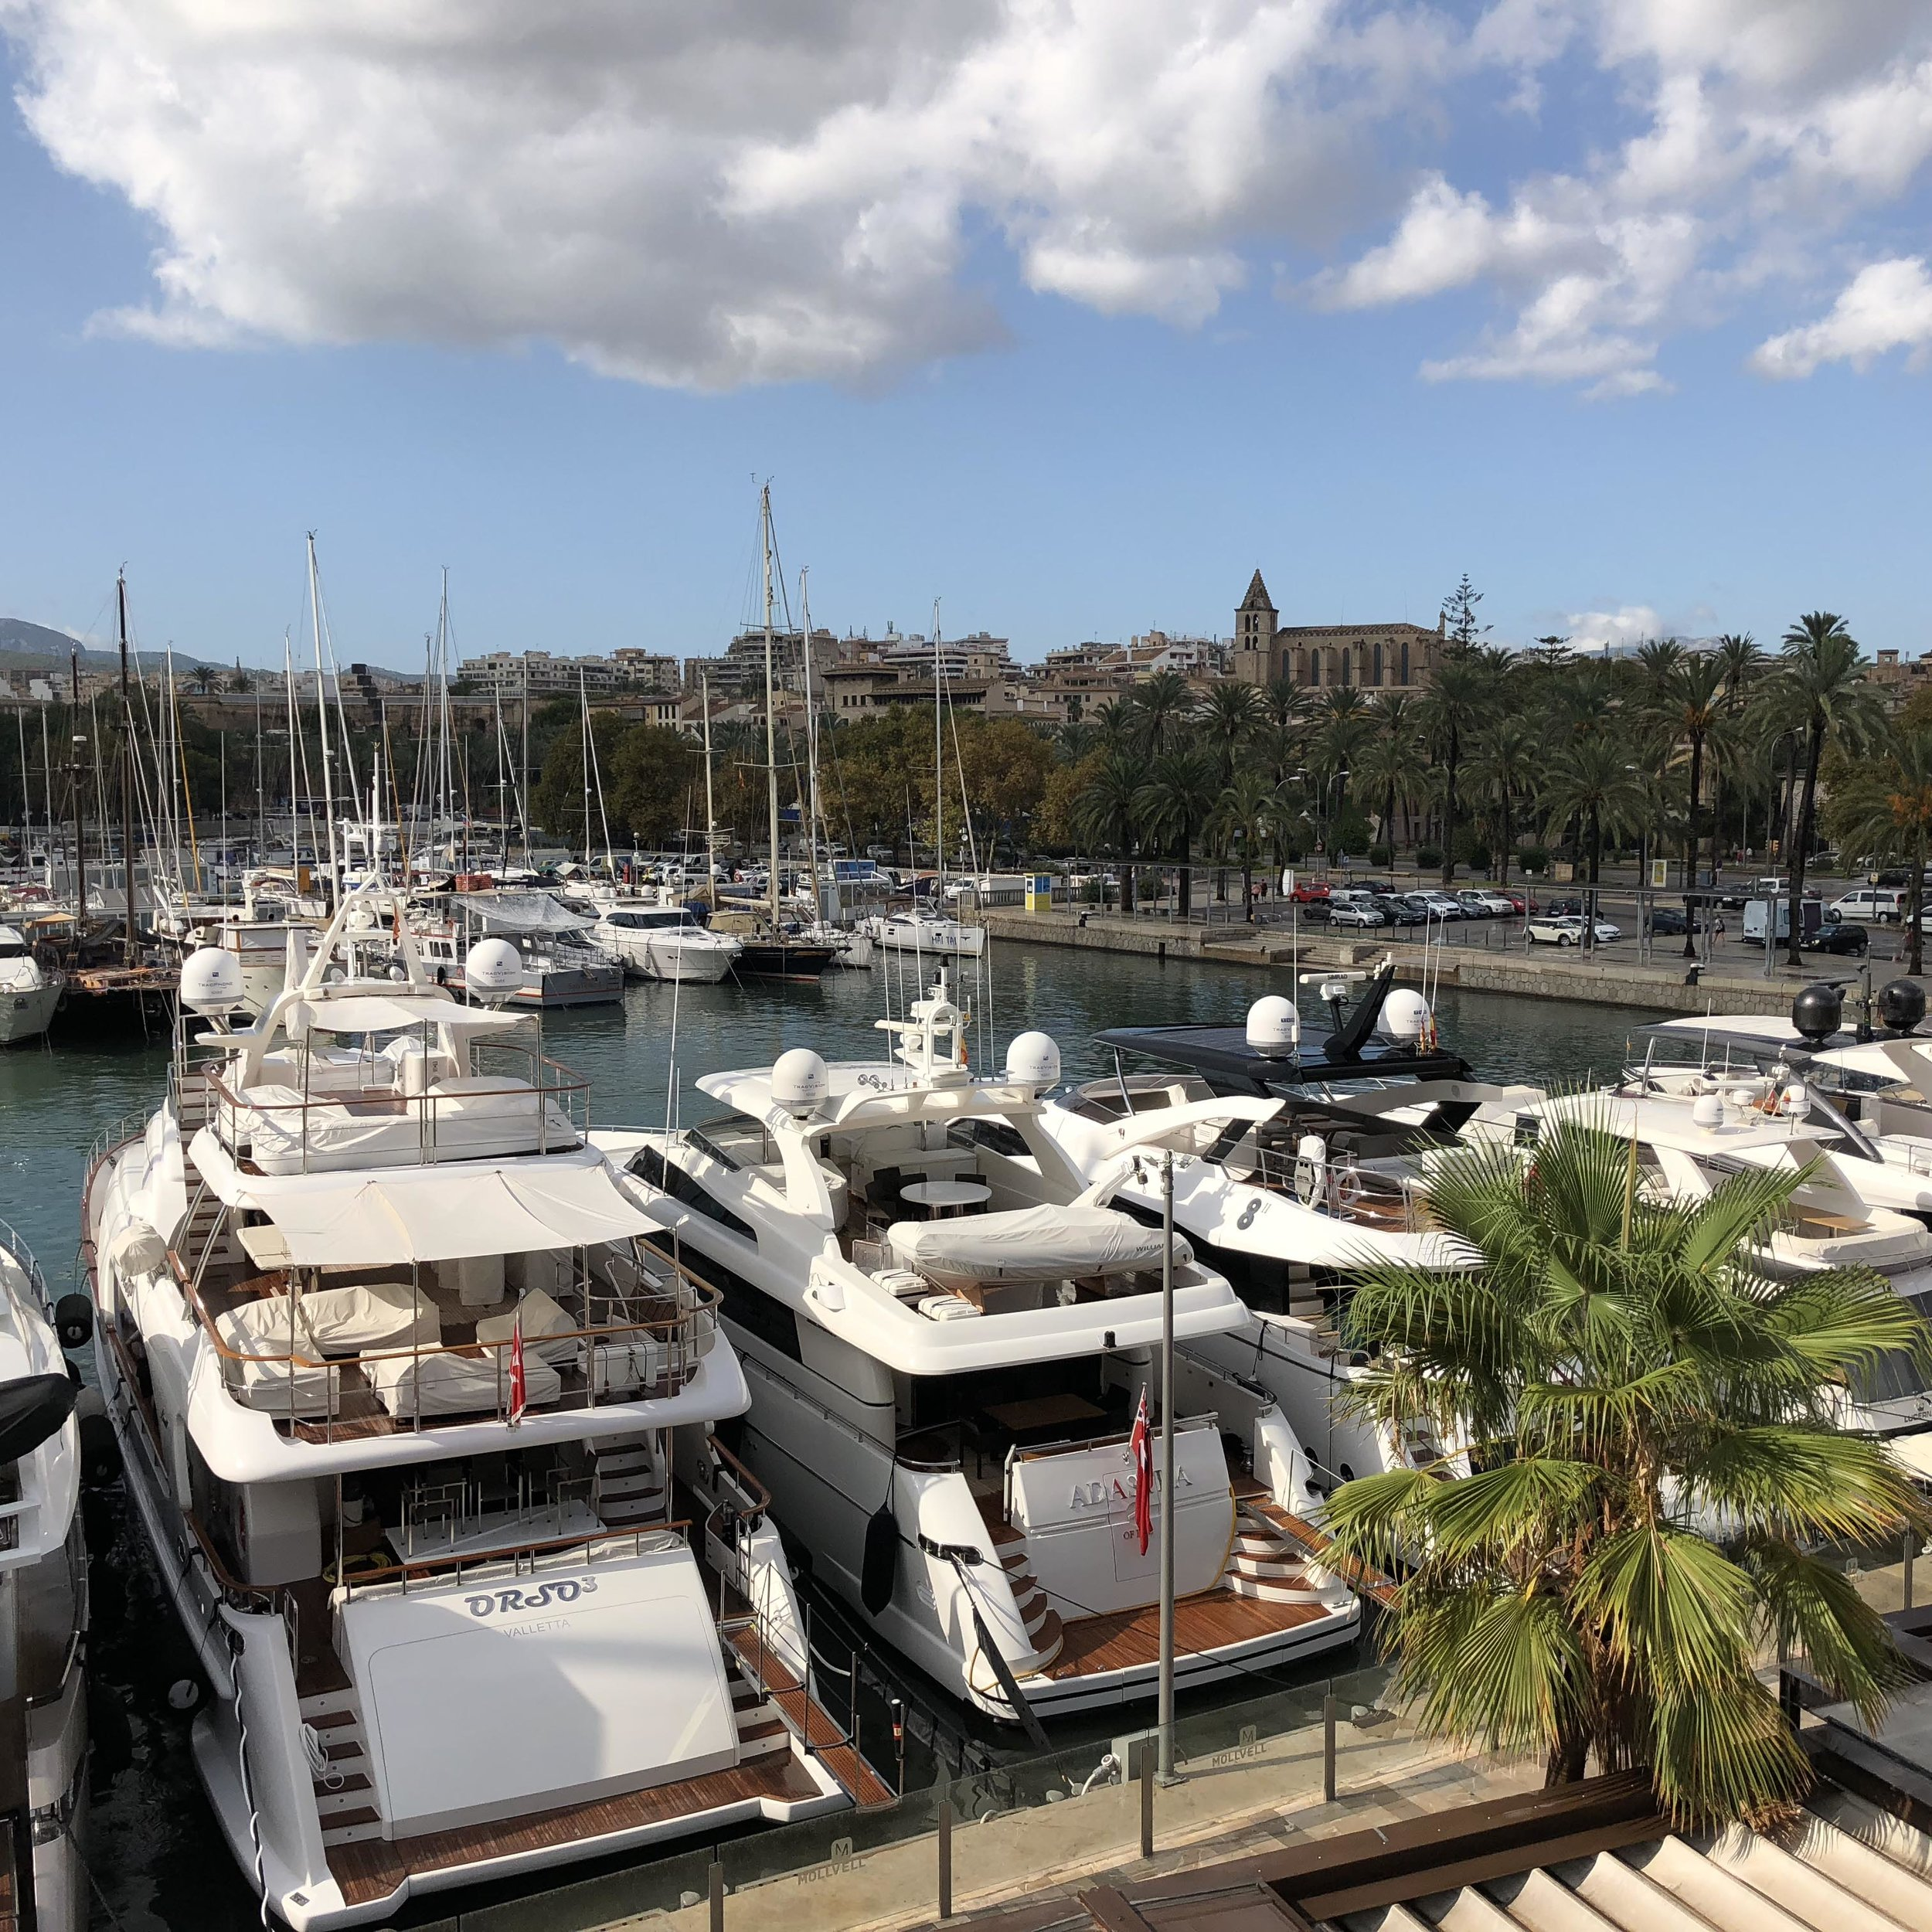 The port of Palma.